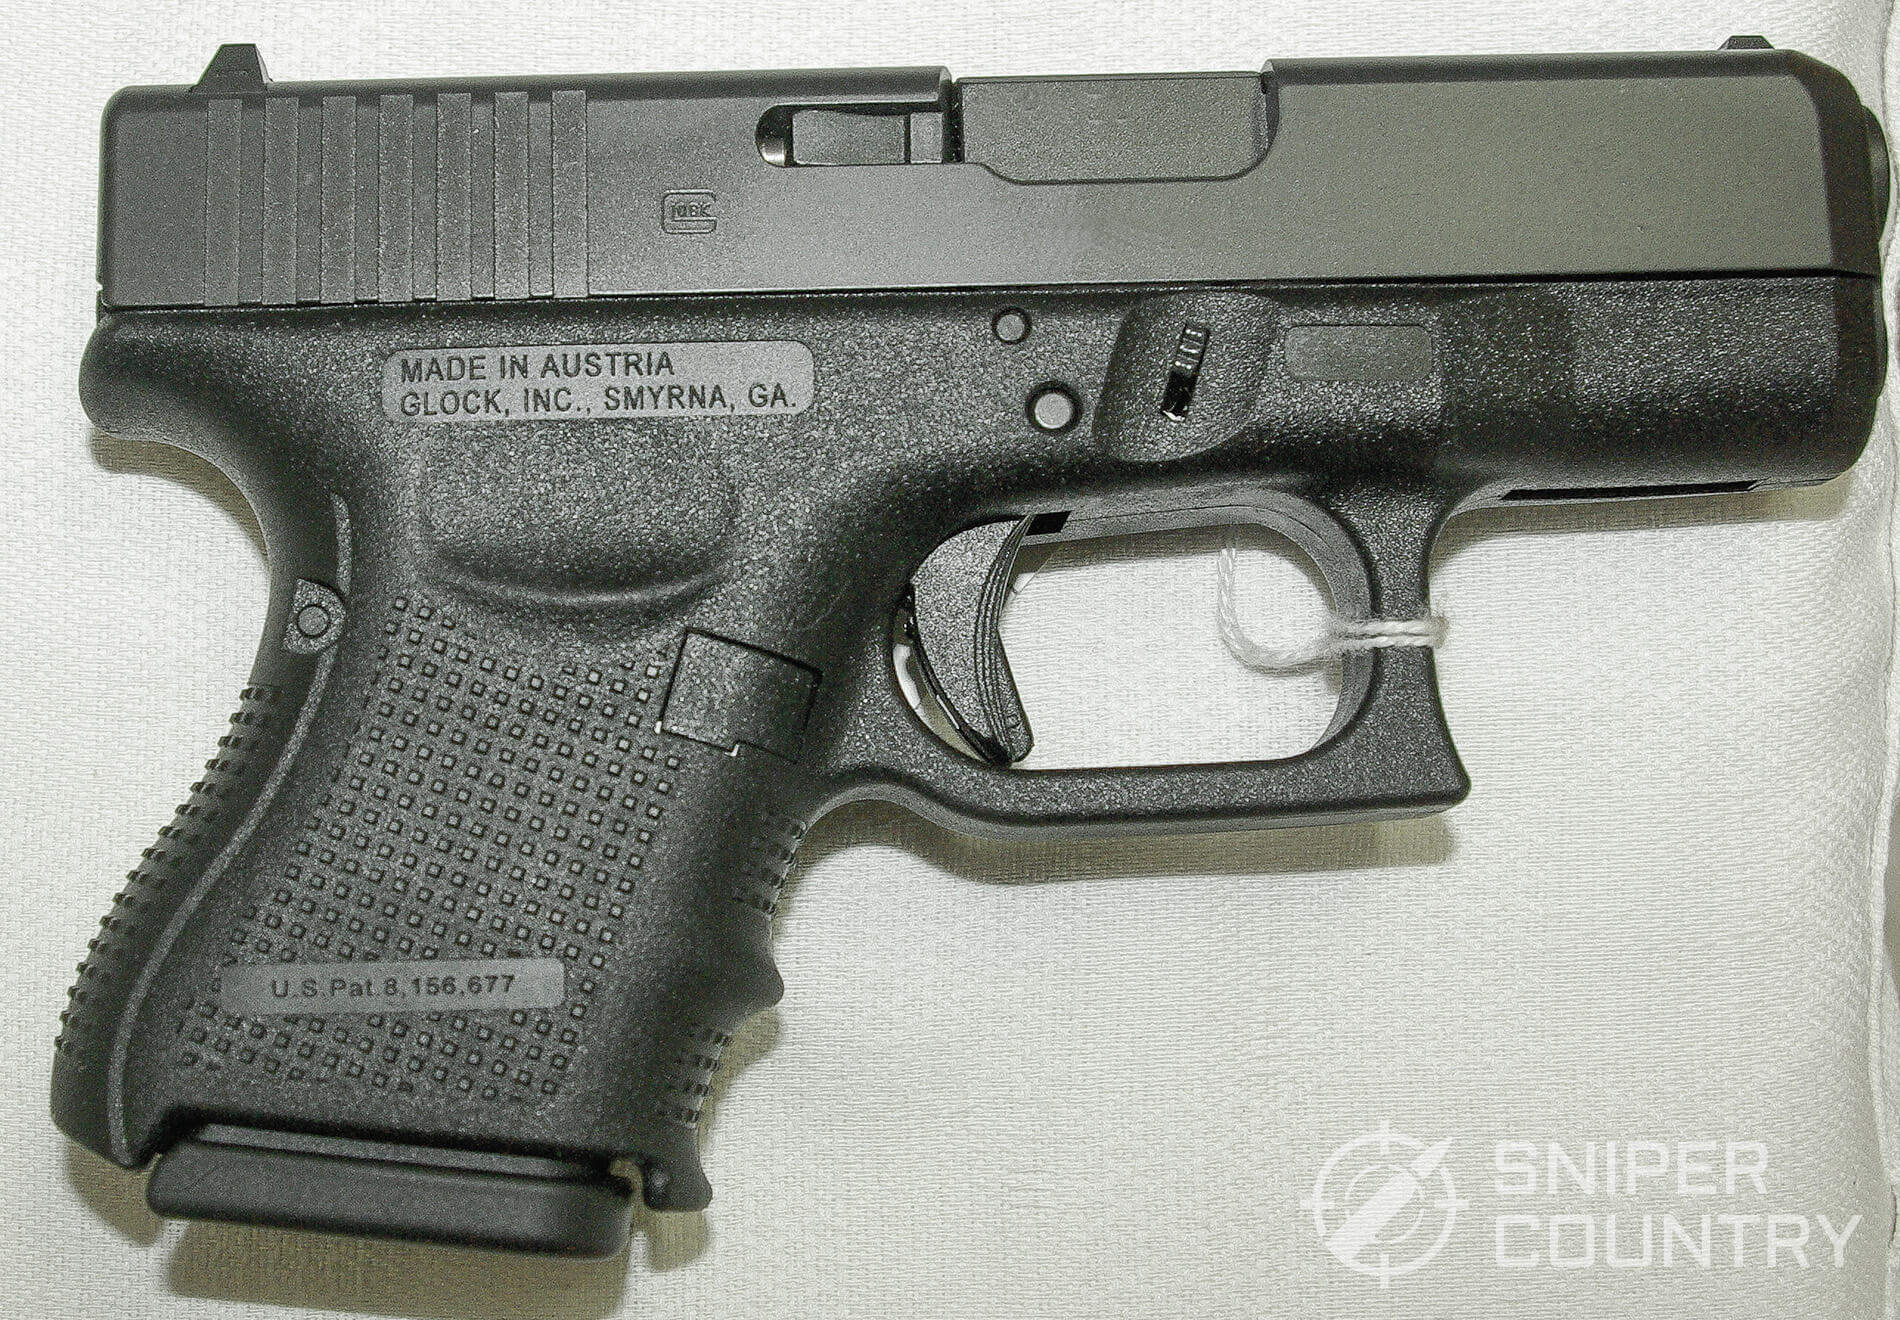 9mm Glock Models [Ultimate Guide] | Sniper Country